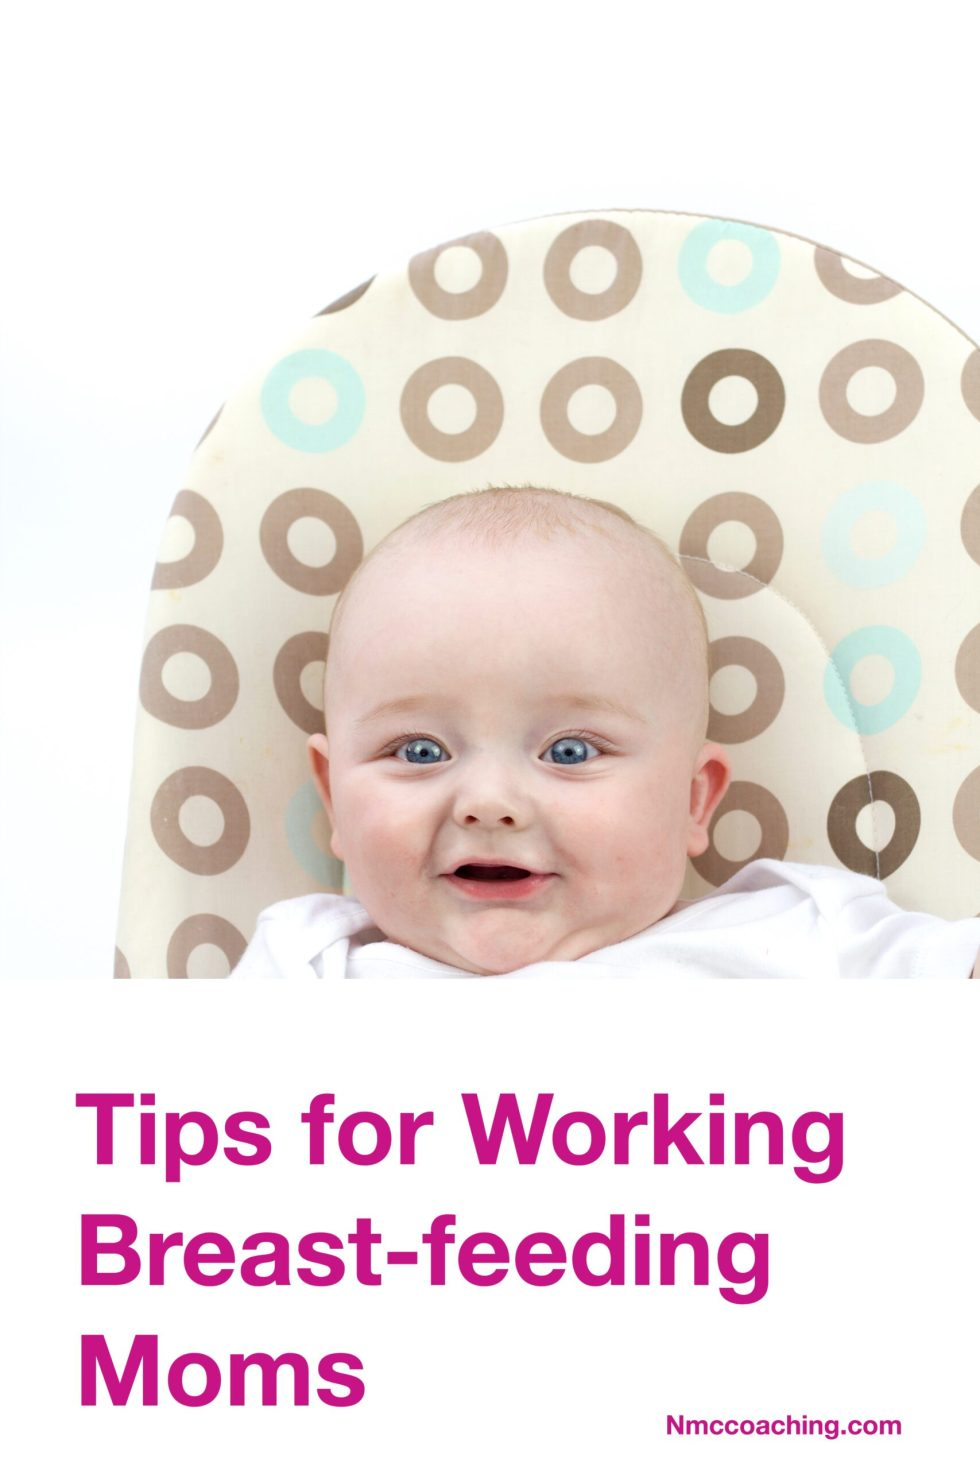 Tips for working breast-feeding moms